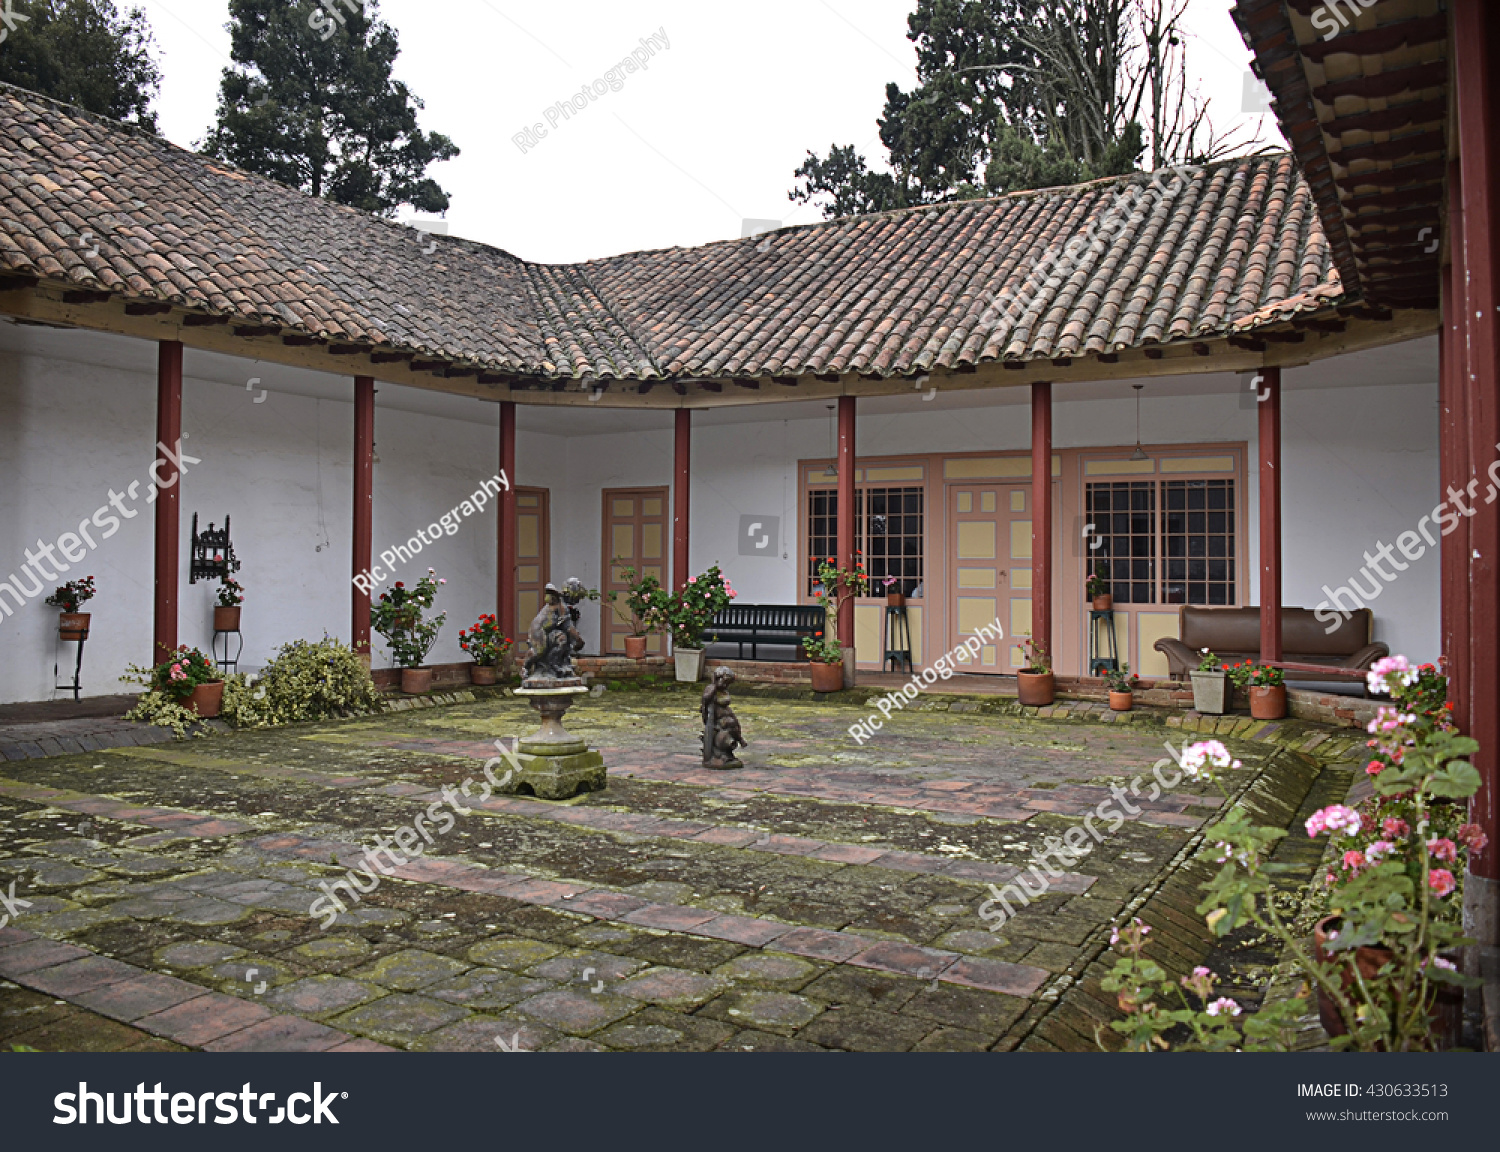 Old houses with great eighteenth century architecture among different cities among colombia countrie in south